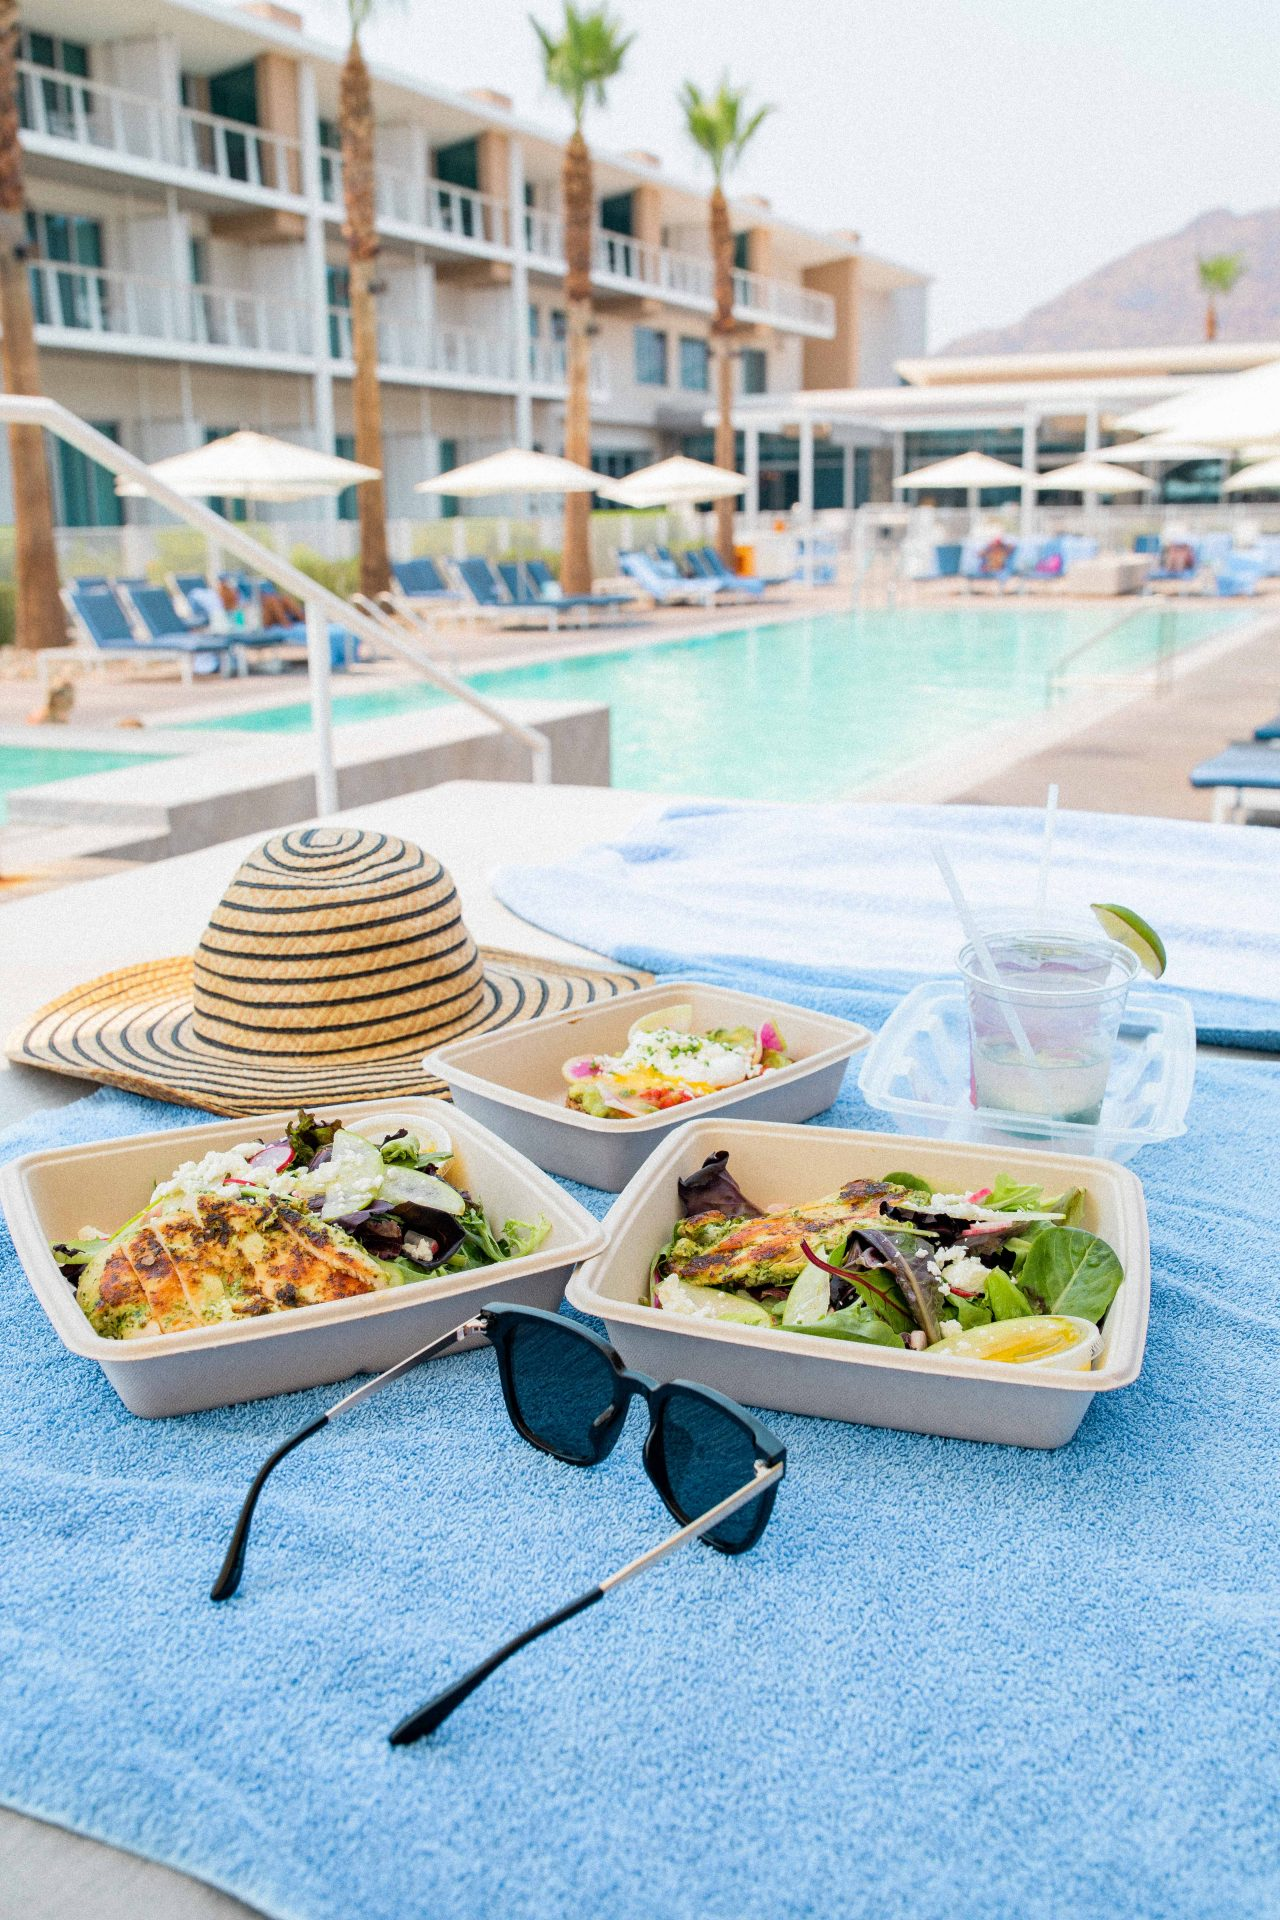 mountain shadows resort scottsdale Arizona, luxury resort, travel guide, scottsdale Arizona travel guide, pool day, blog, blog post, healthy poolside day, dressing, avocado toast, drinks by the pool, honeymoon, what to do in scottsdale